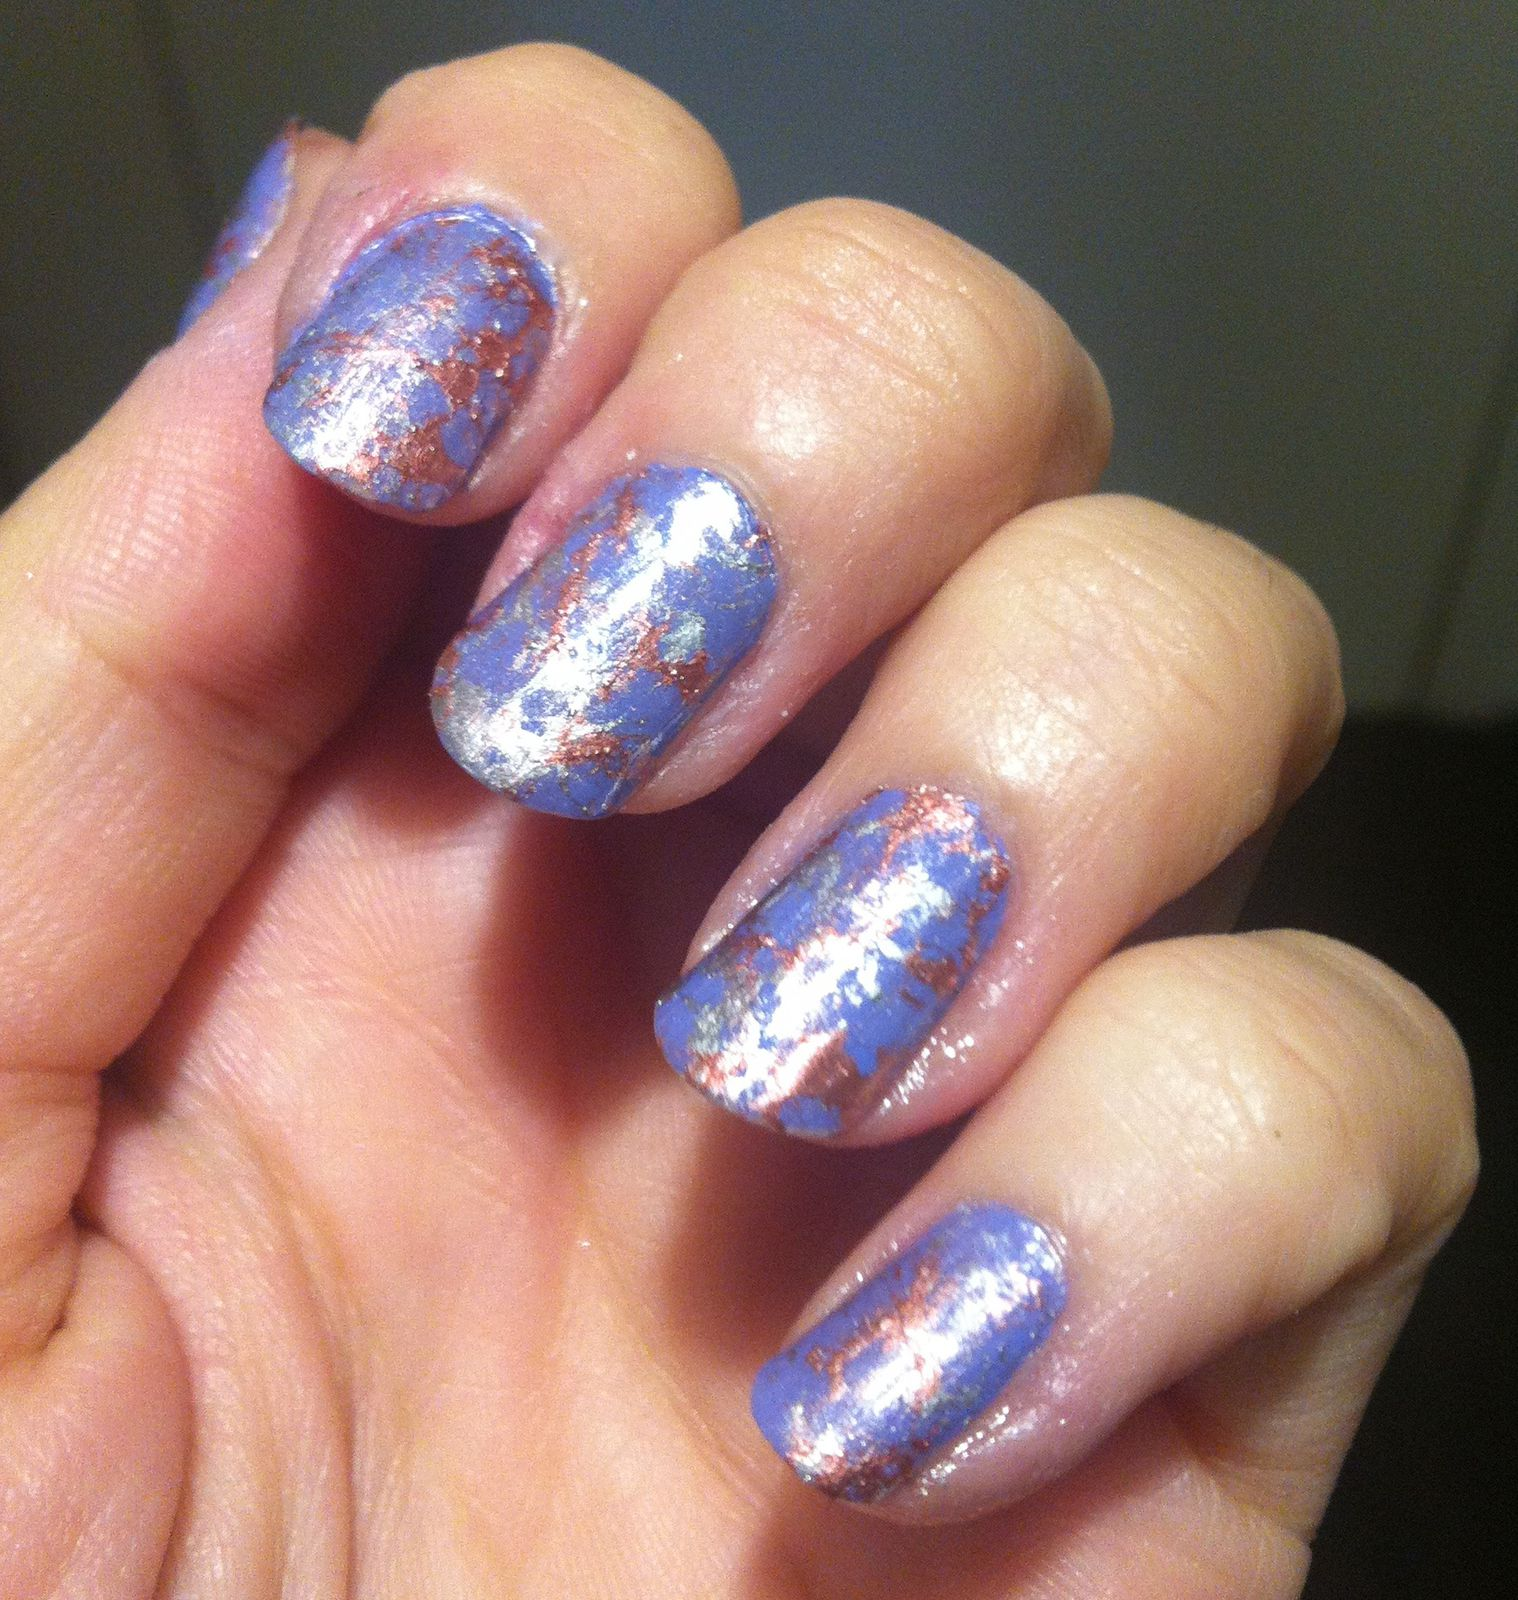 water spotted nails -1er essai- et swatch Moyra 45